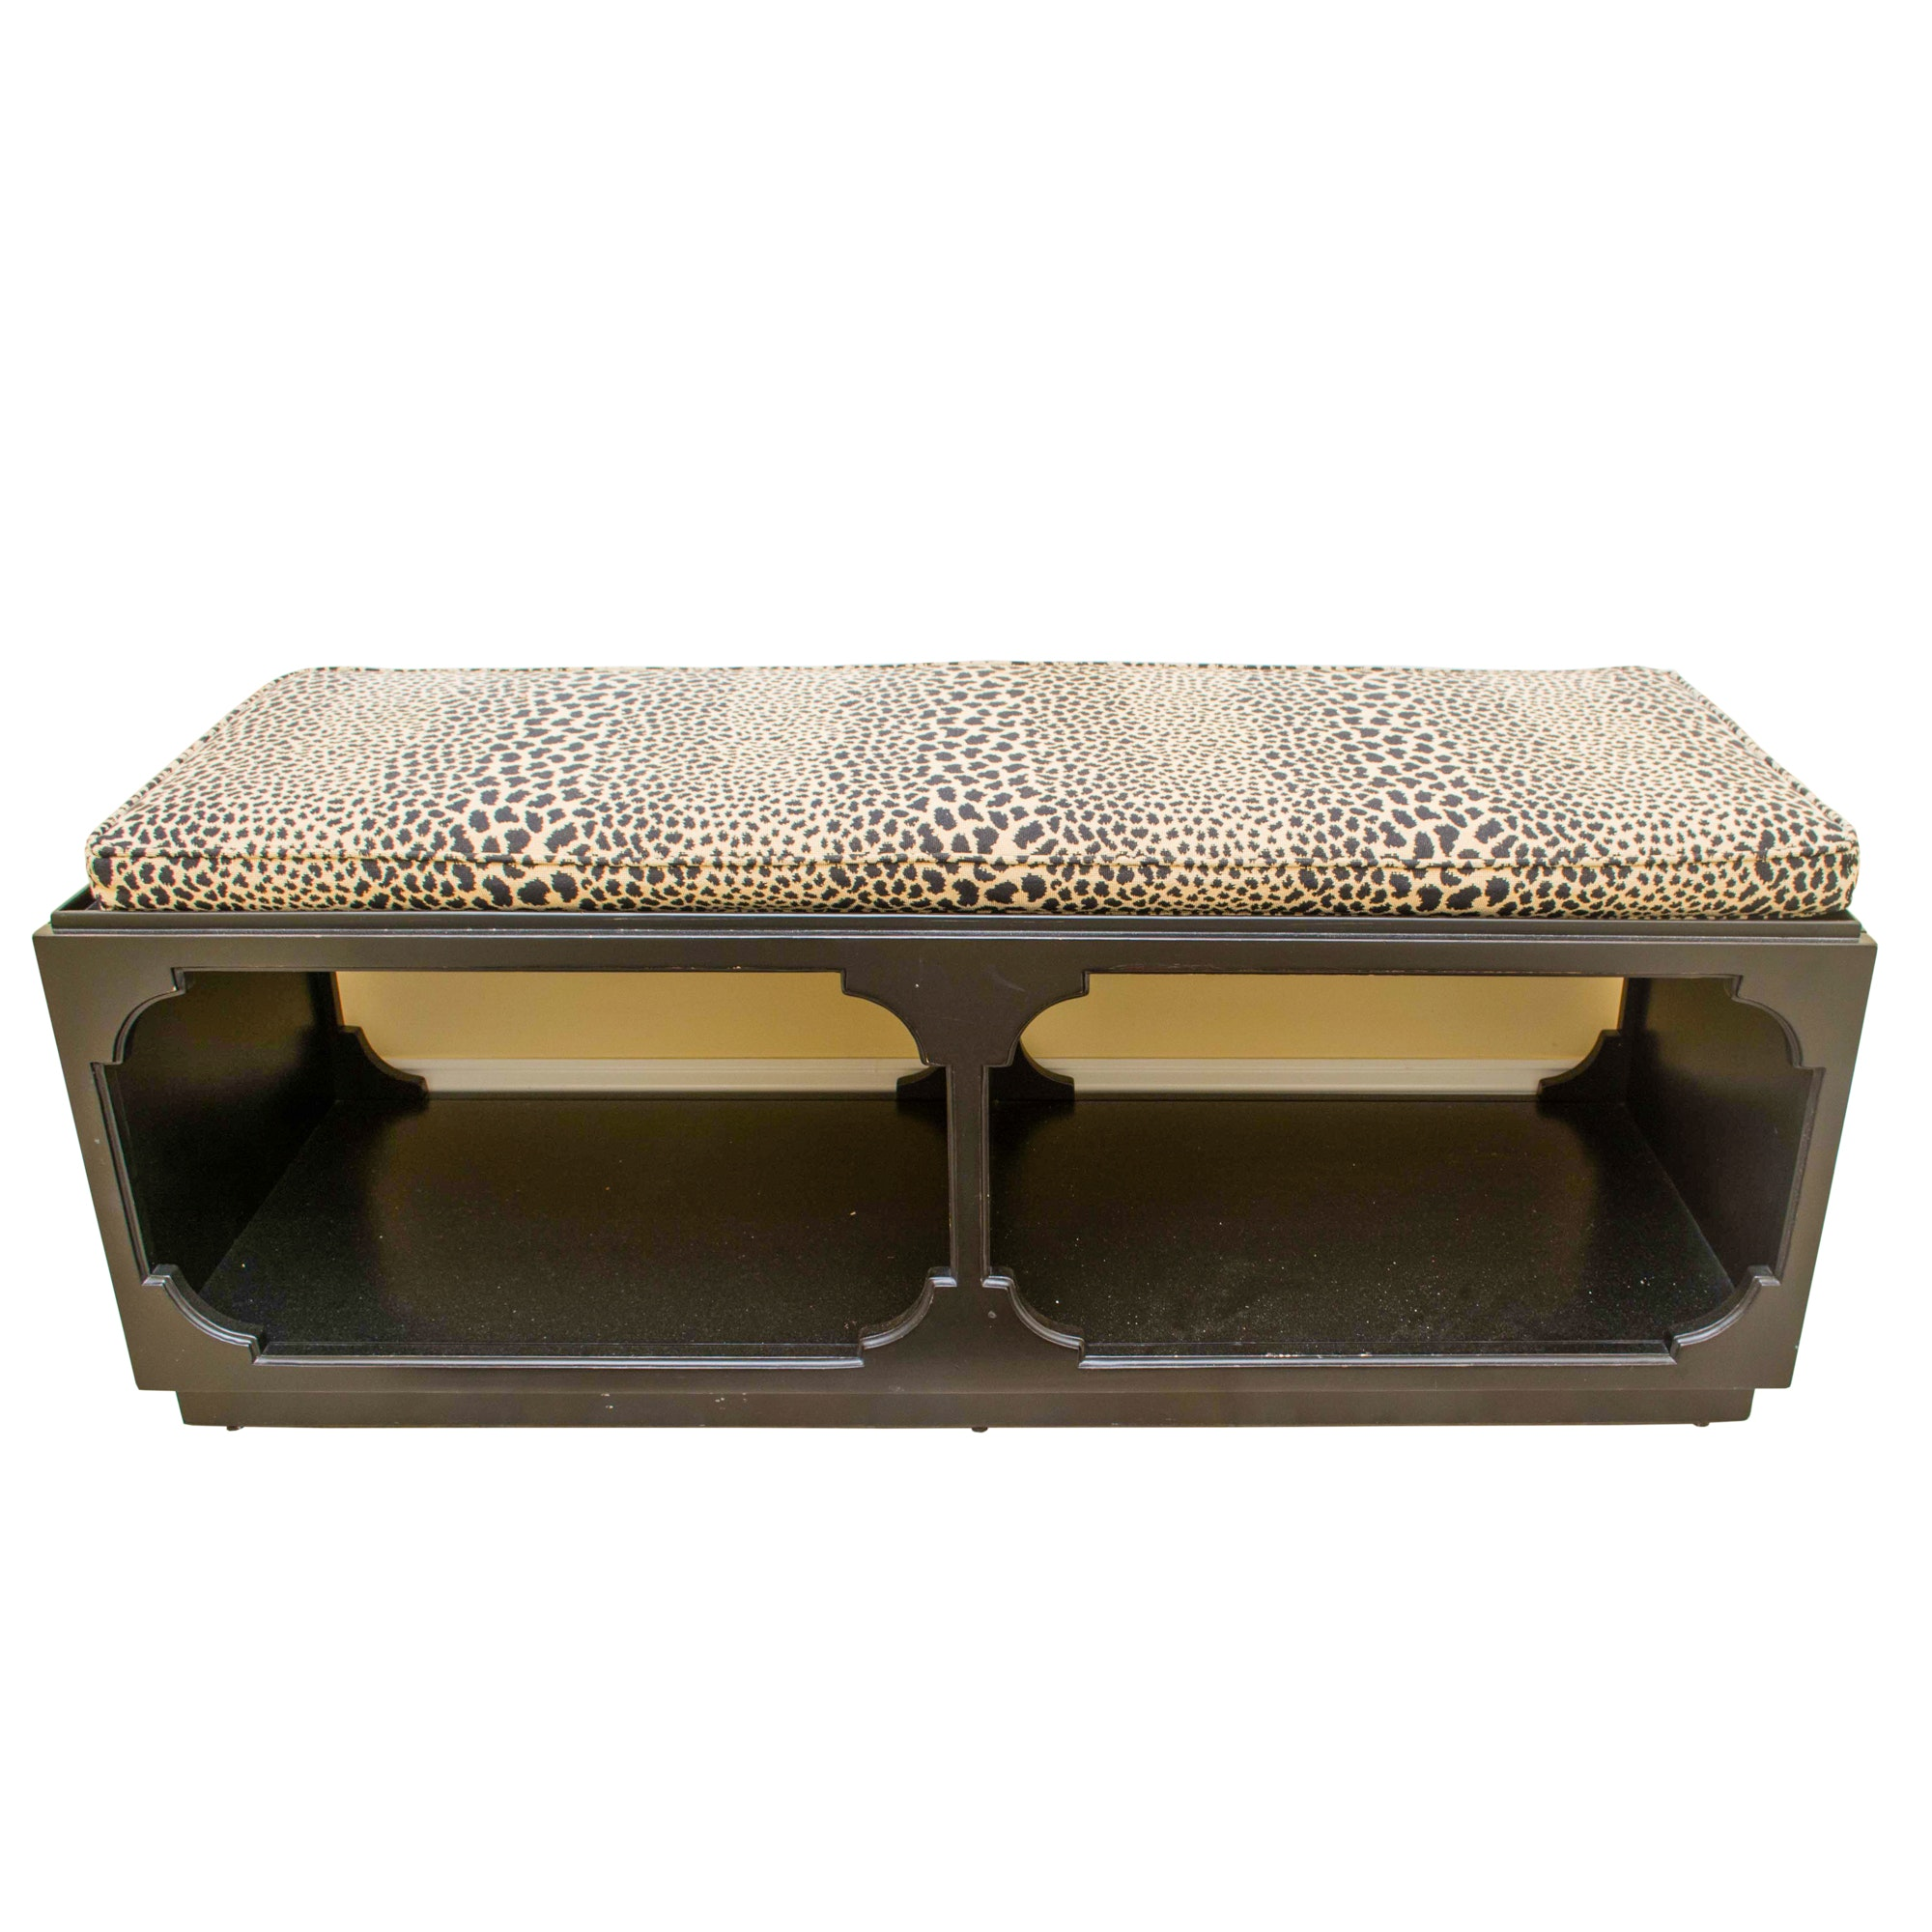 Black Lacquered Bench with Leopard Print Cushion